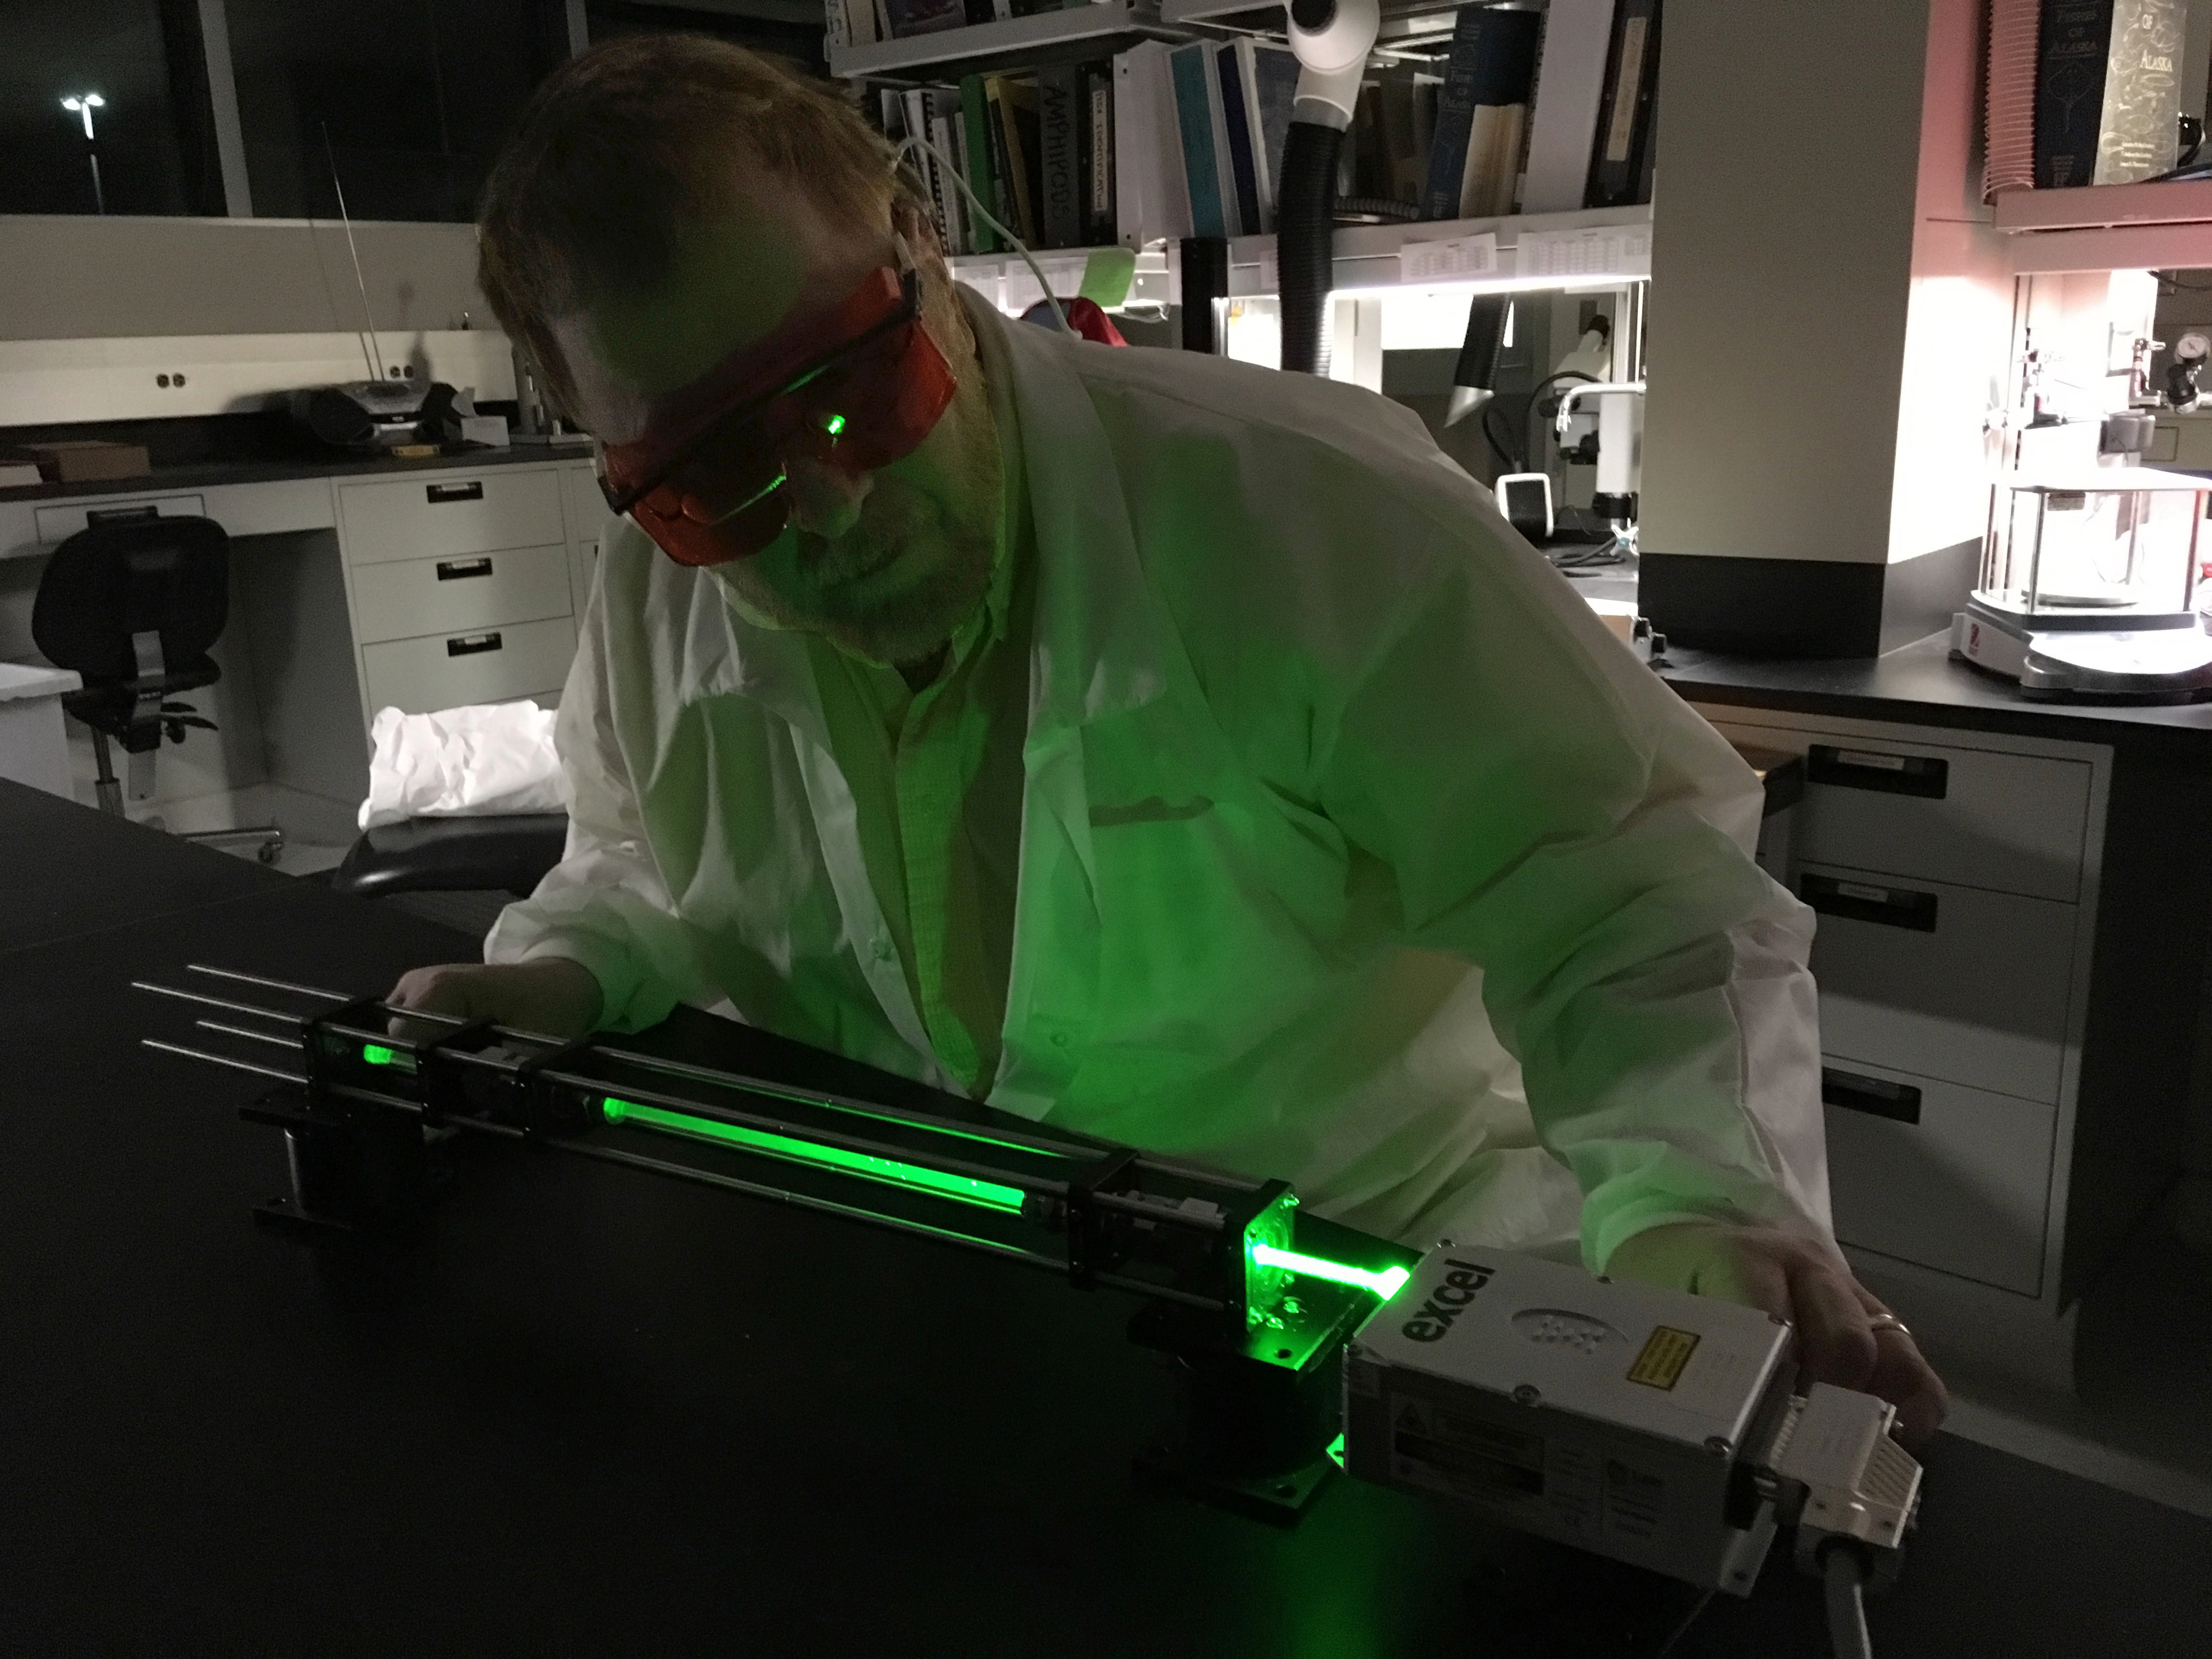 Wearing eye protection against an intensely green laser, Jonathan Kamler examines a new, not-yet-silvered, capillary.